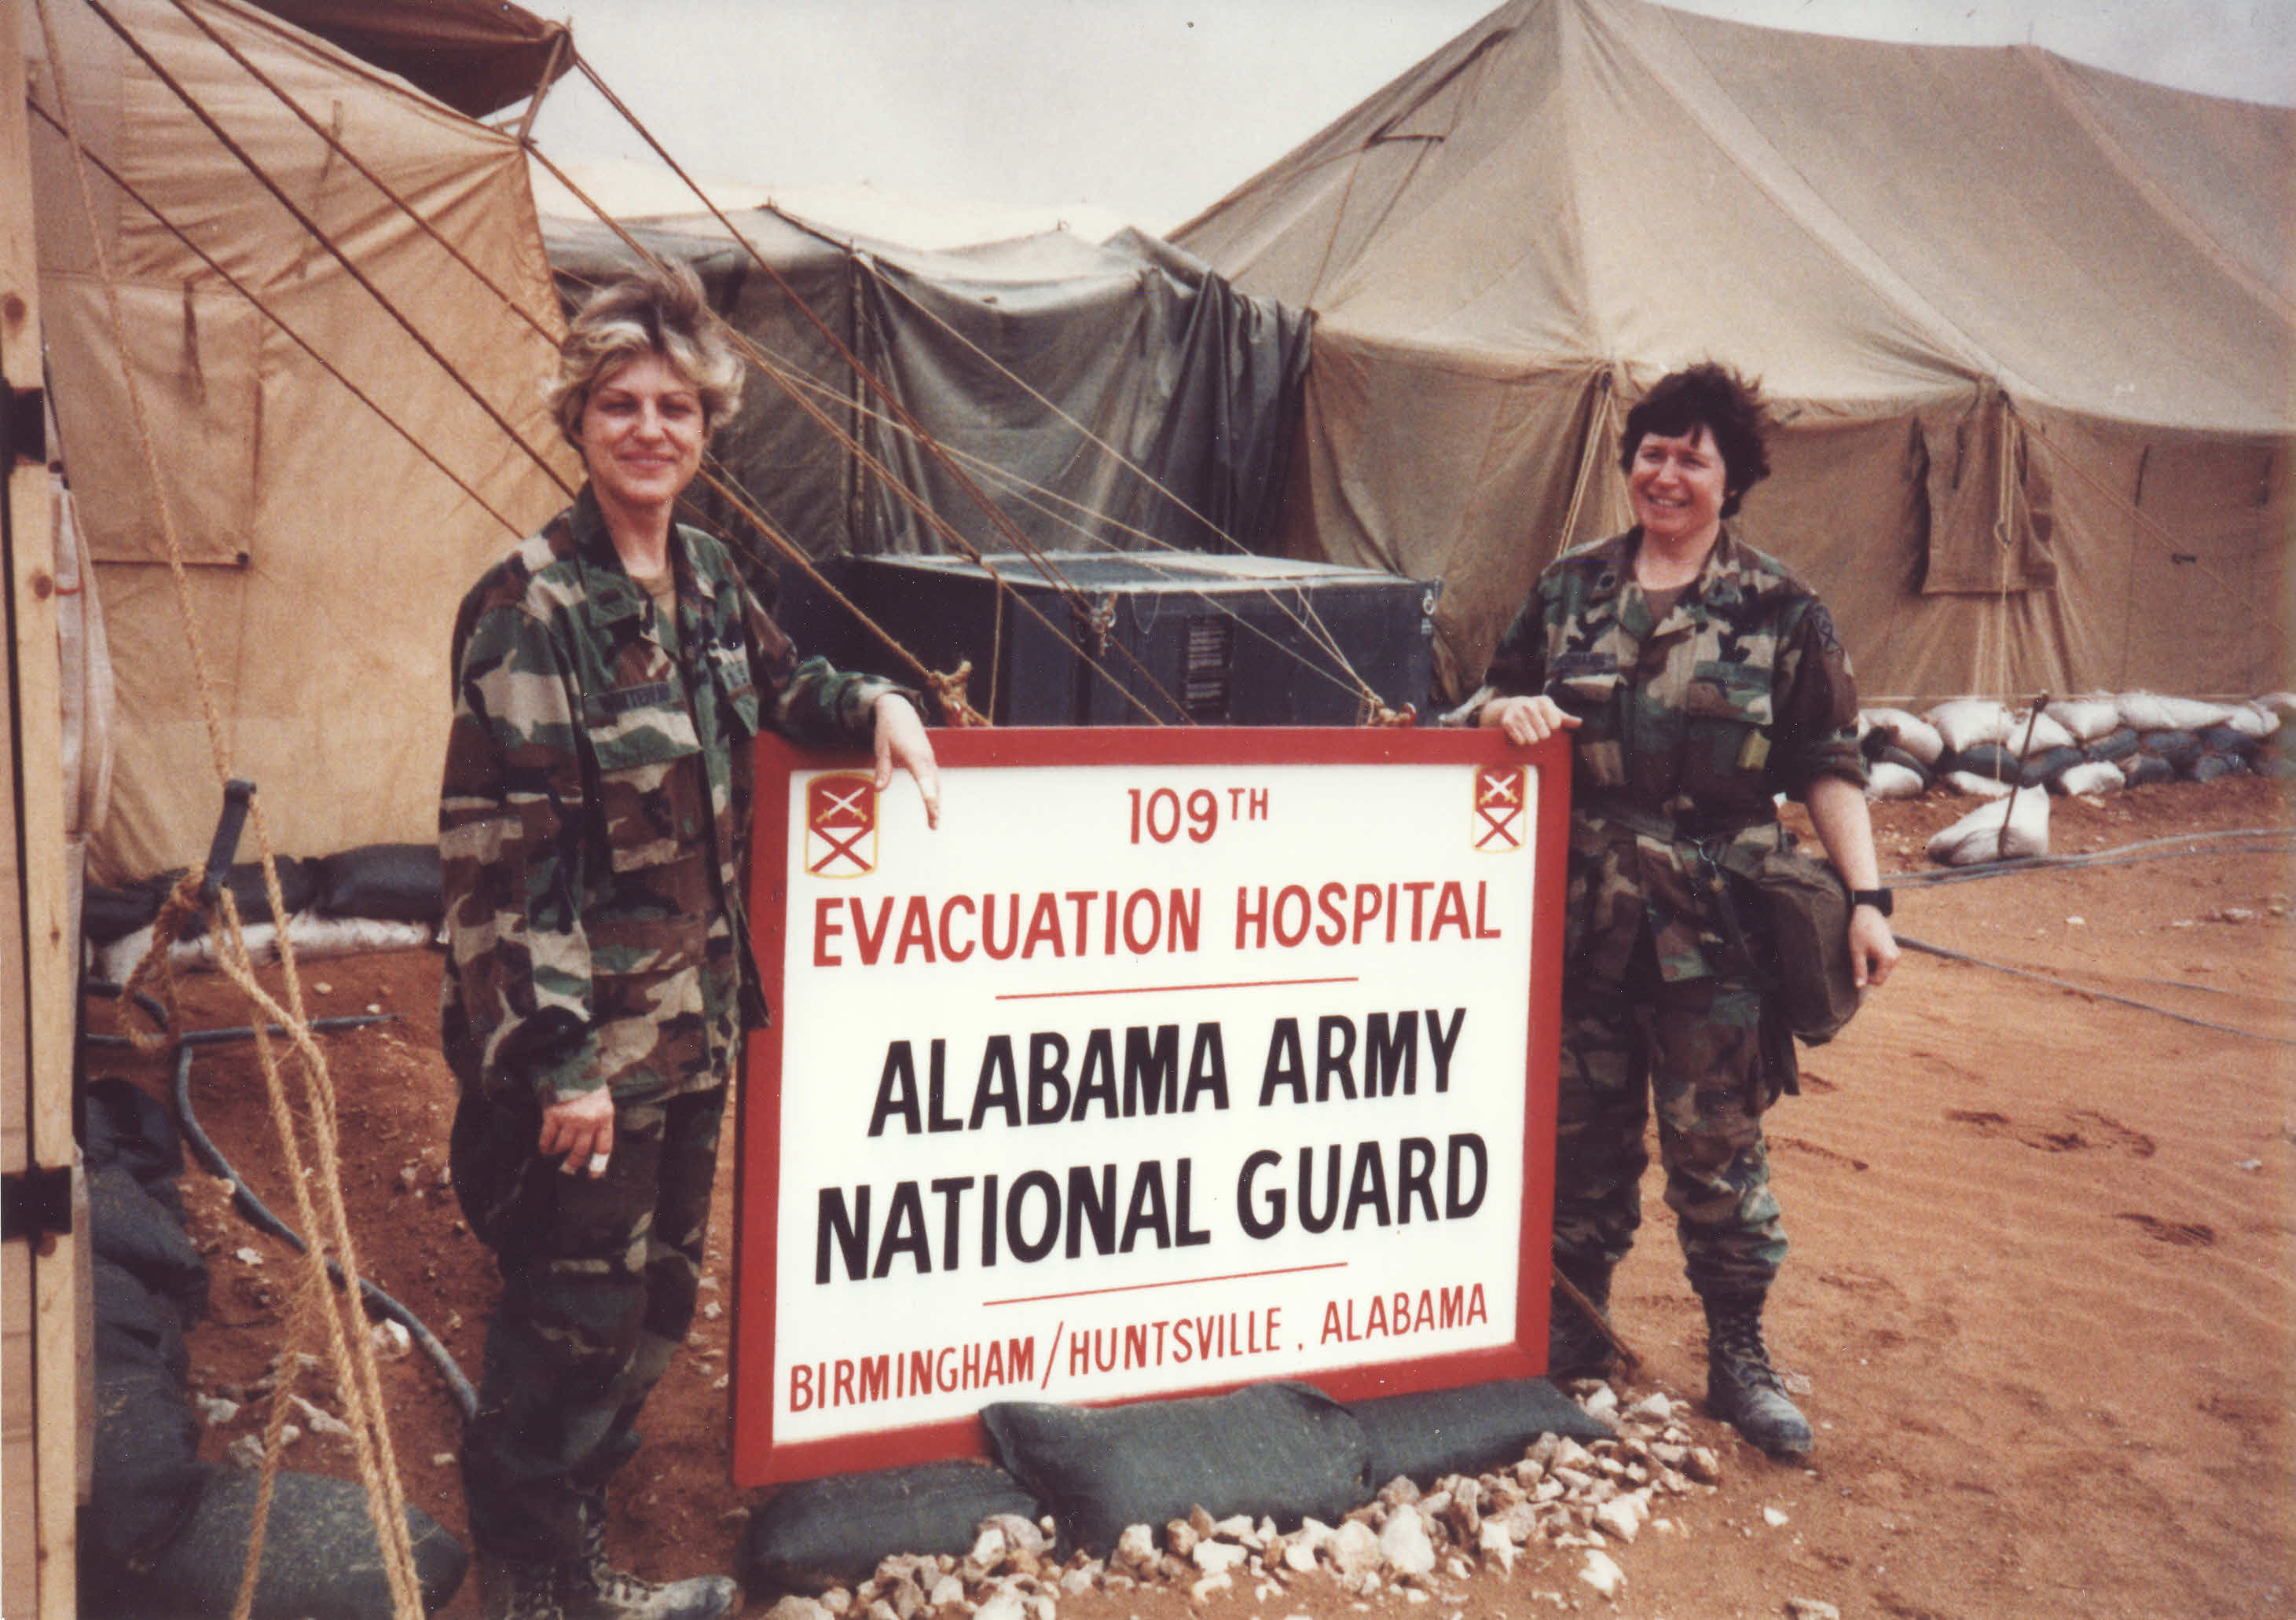 Army National Guard's 109th Evacuation Hospital